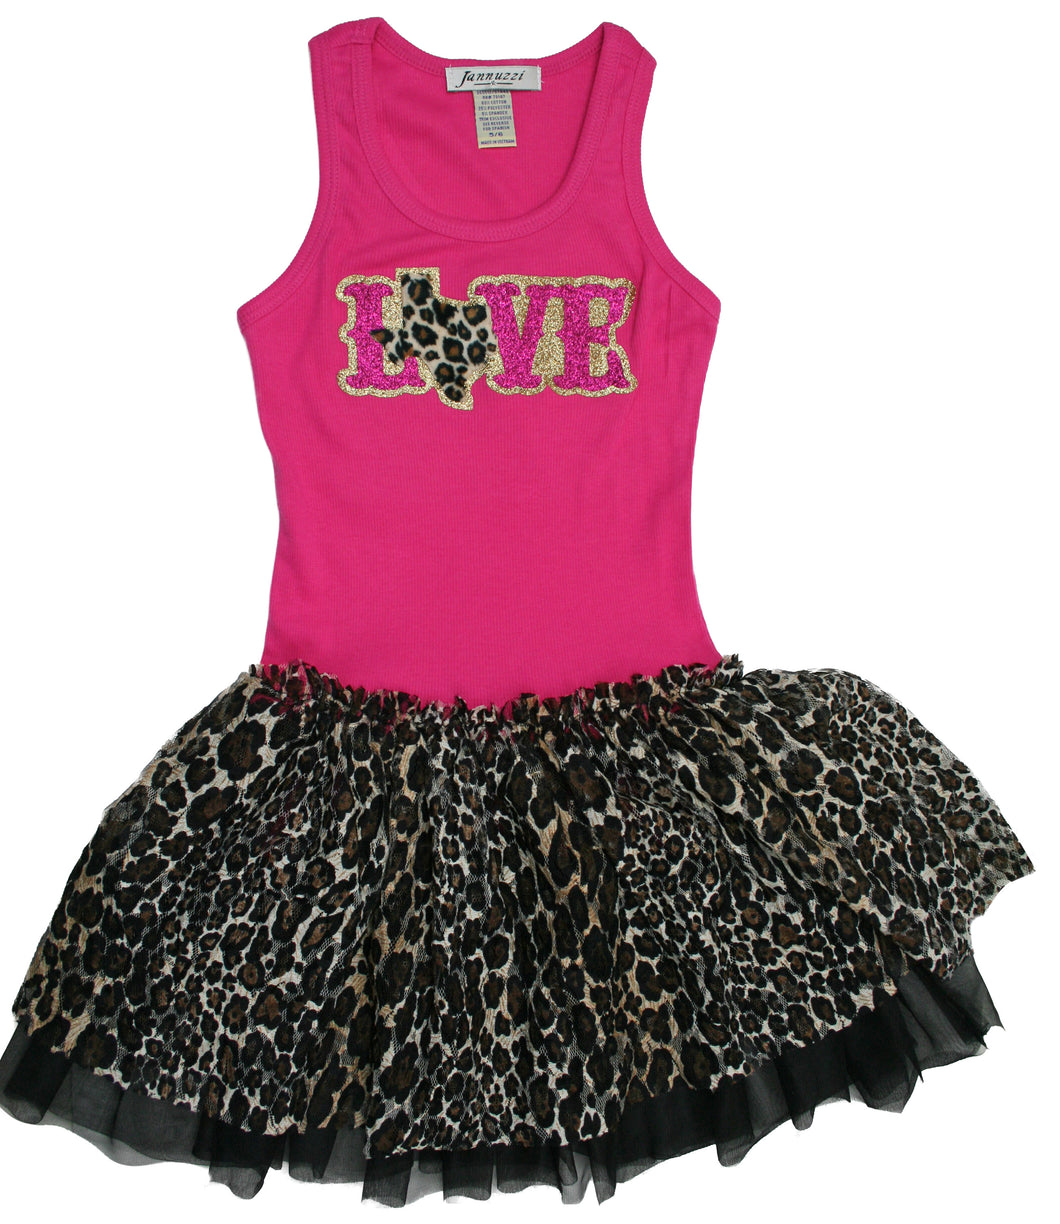 LOVE Texas Cheetah Tutu Tank